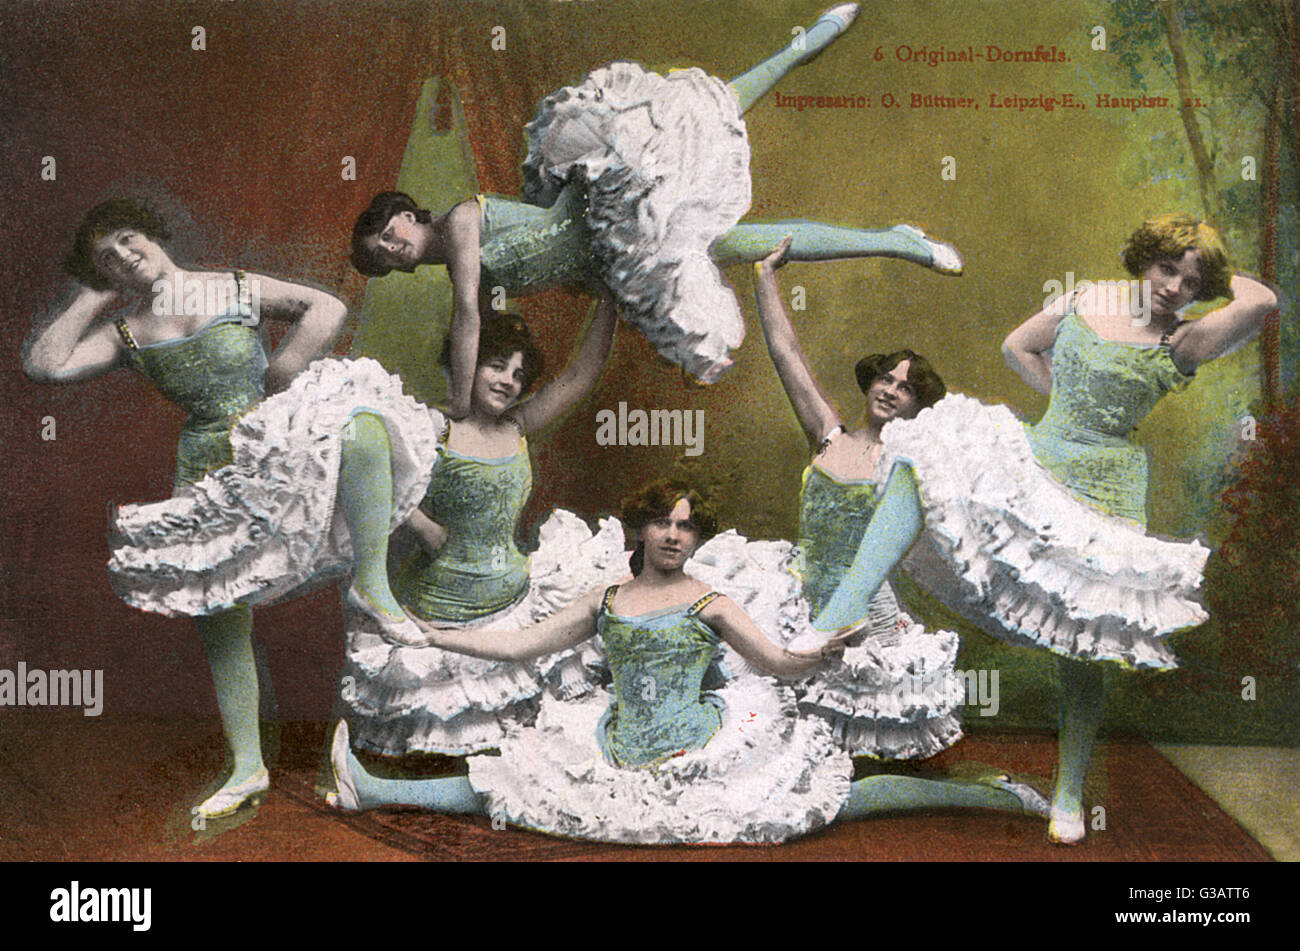 German female dance troupe striking a sculptural pose!     Date: 1907 - Stock Image